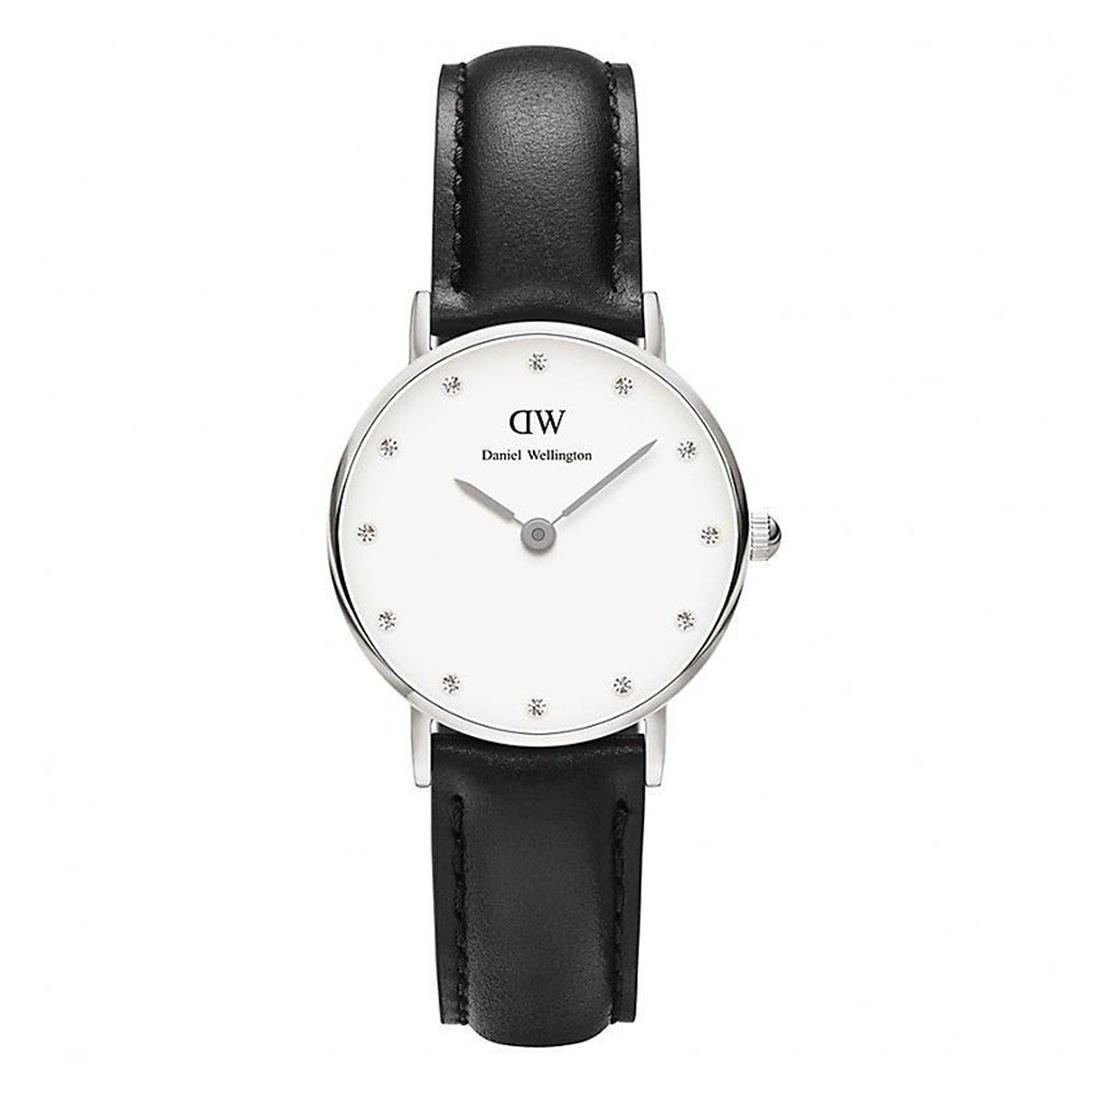 Orologio cassa 26 mm - DANIEL WELLINGTON